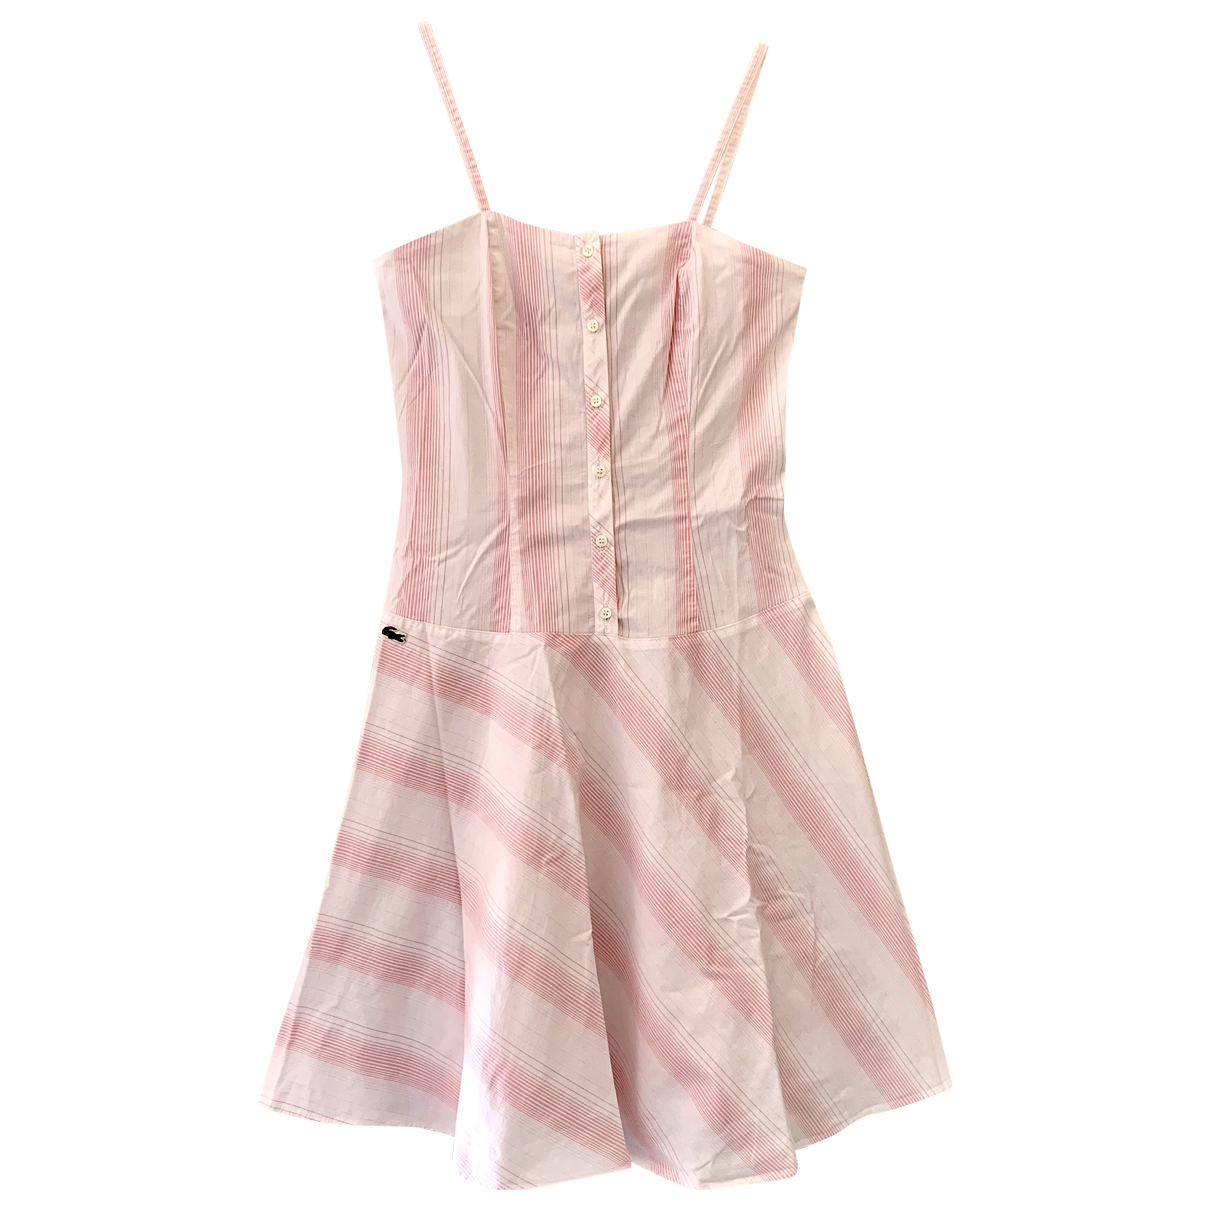 Lacoste N Pink Cotton dress for Women 40 FR